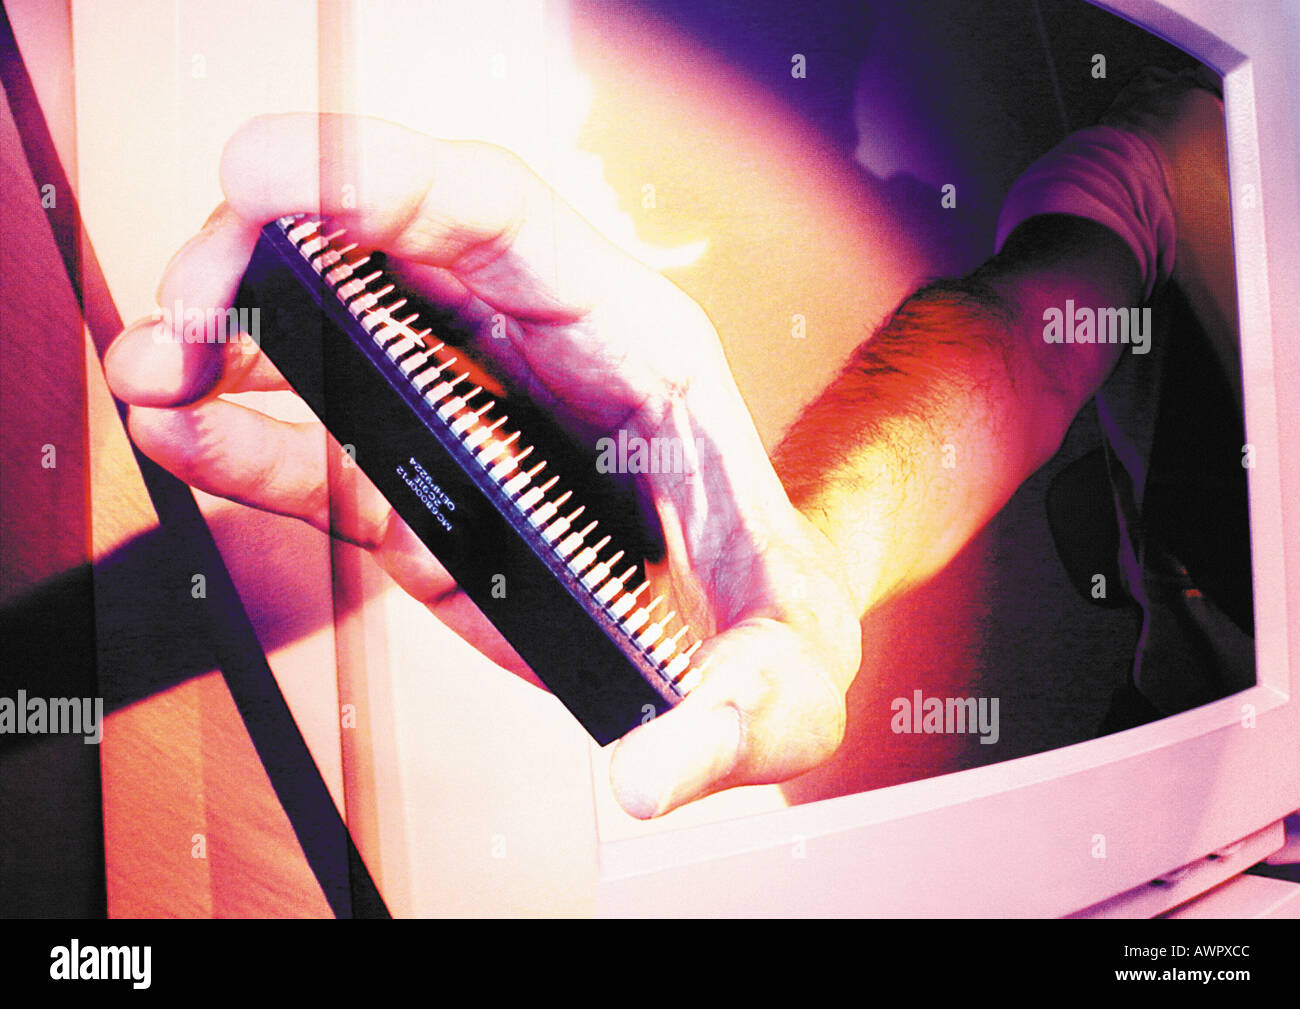 Hand emerging from computer monitor, holding circuit board, digital composite. - Stock Image